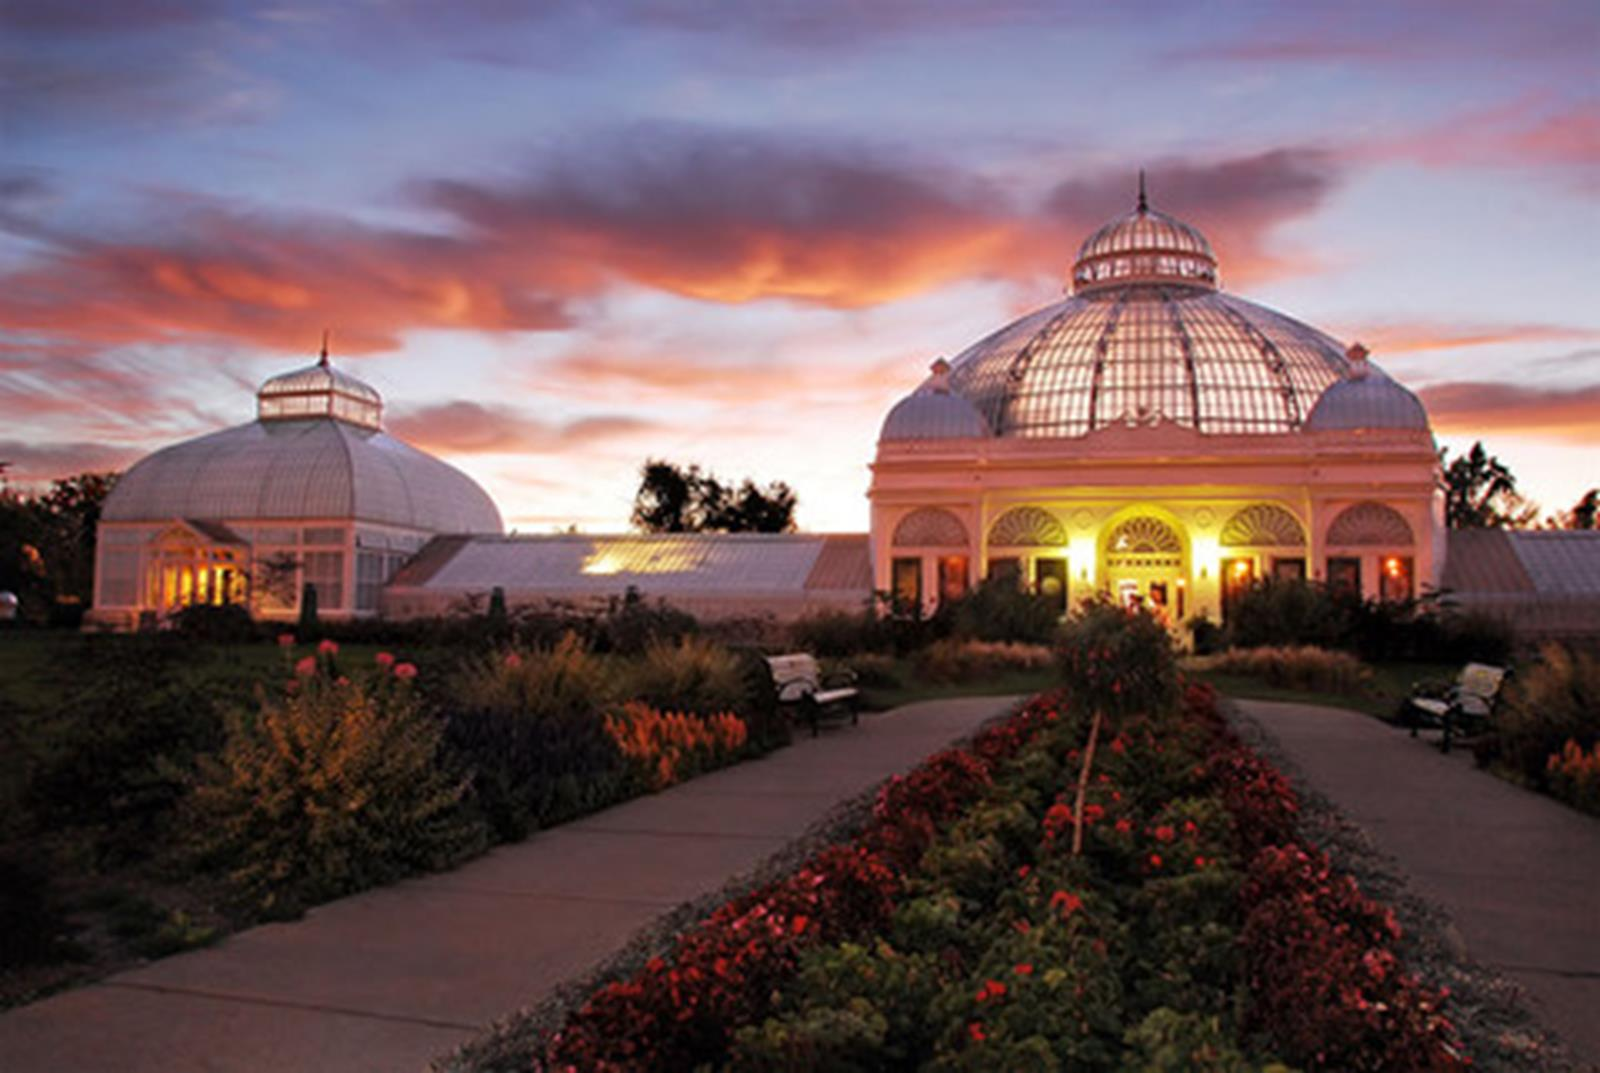 Buffalo & Erie County Botanical Gardens